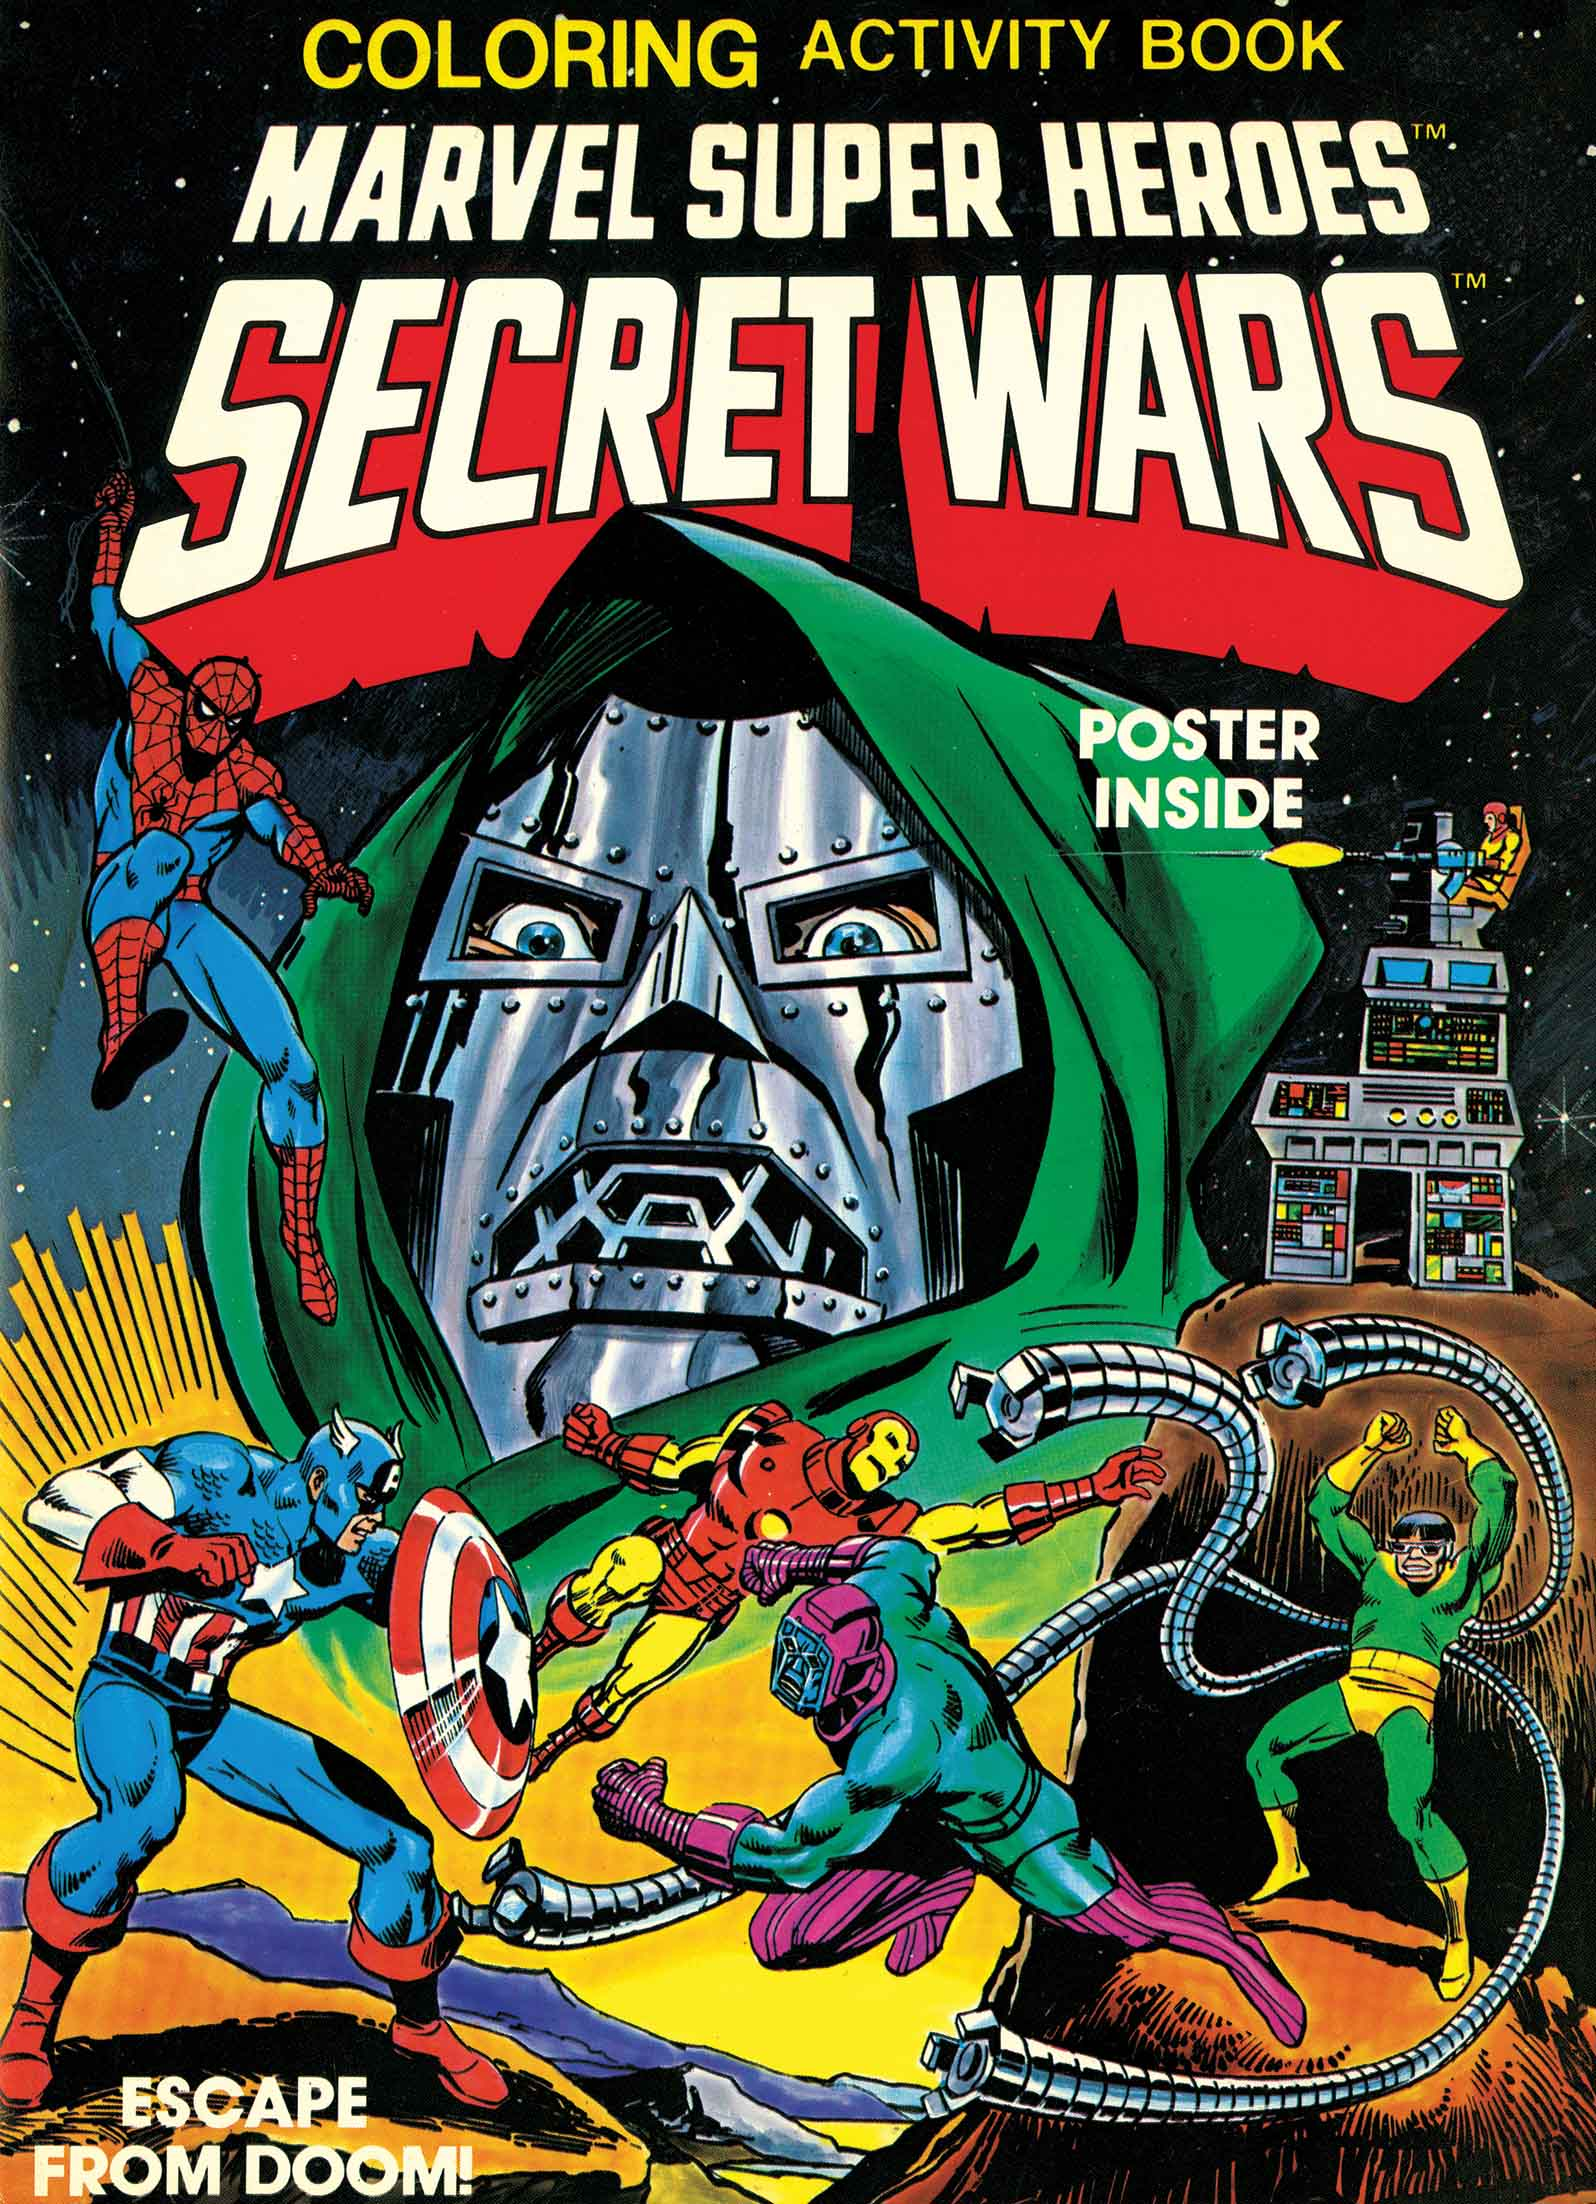 Marvel Super Heroes Secret Wars Activity Book Facsimile Collection (Trade Paperback)